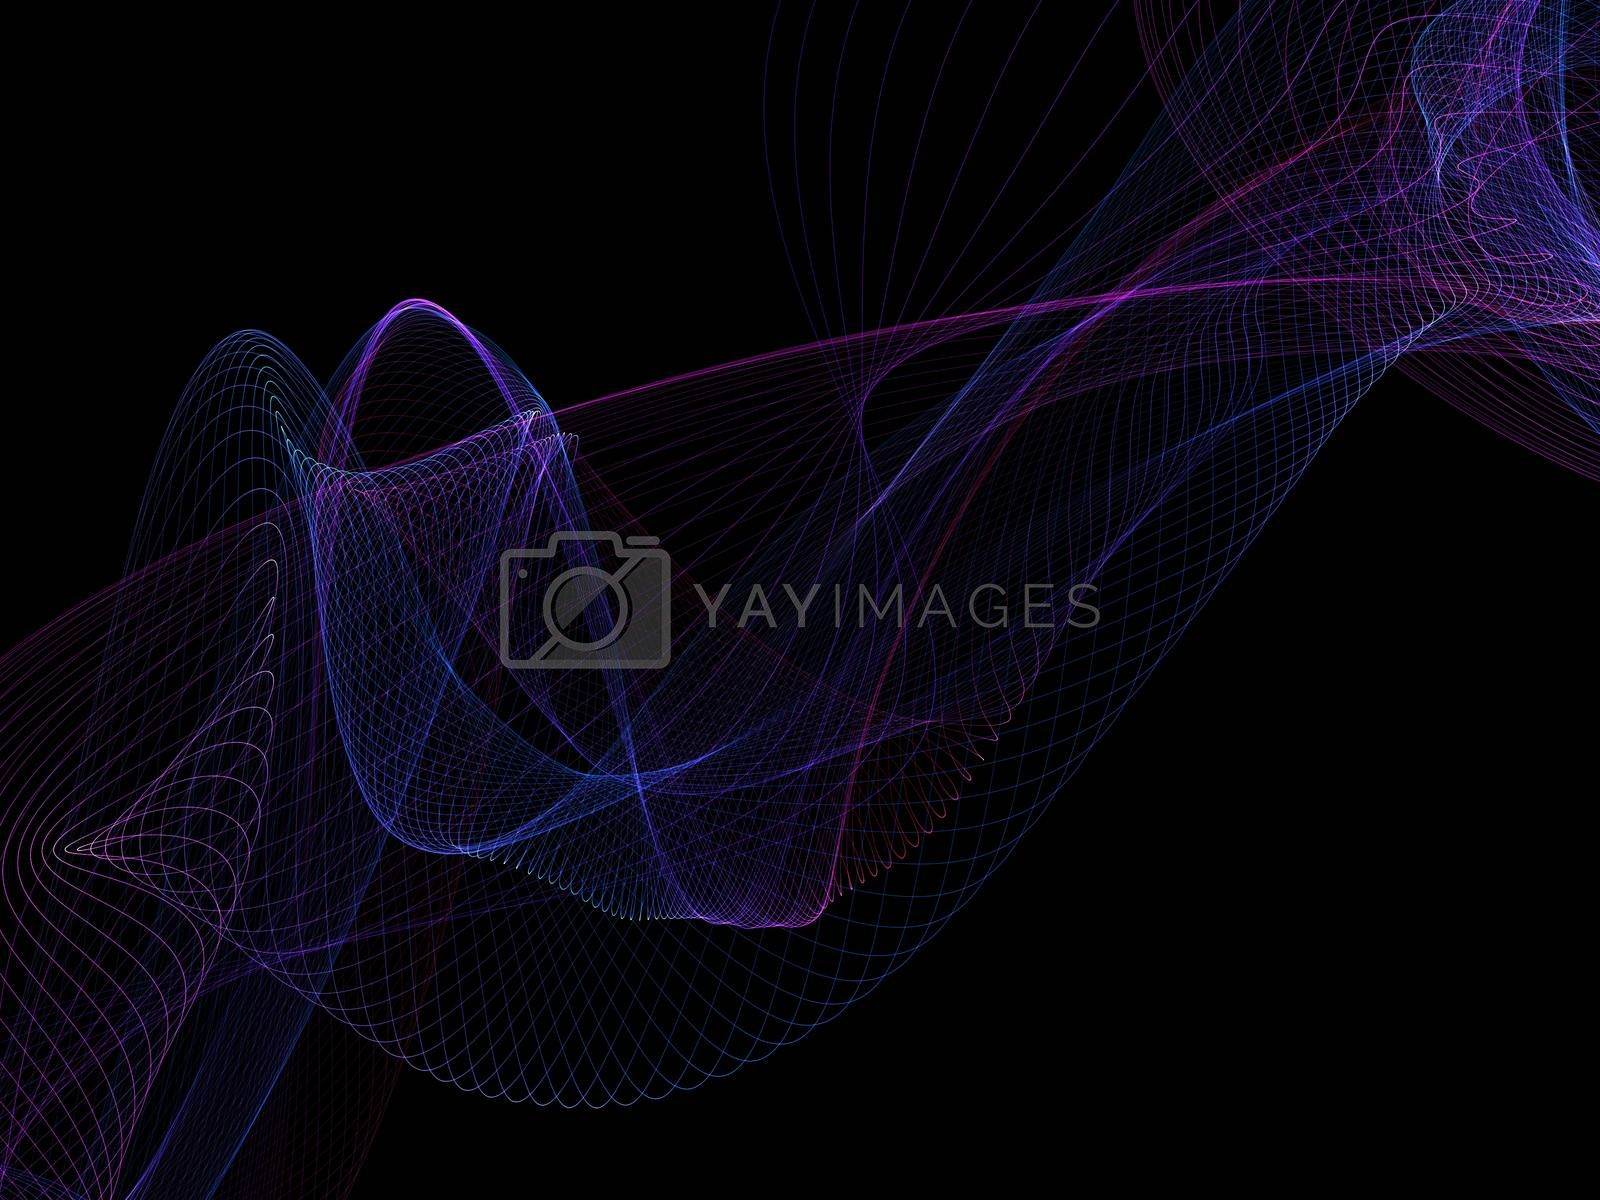 Royalty free image of Dark abstract background with a glowing abstract waves by teerawit